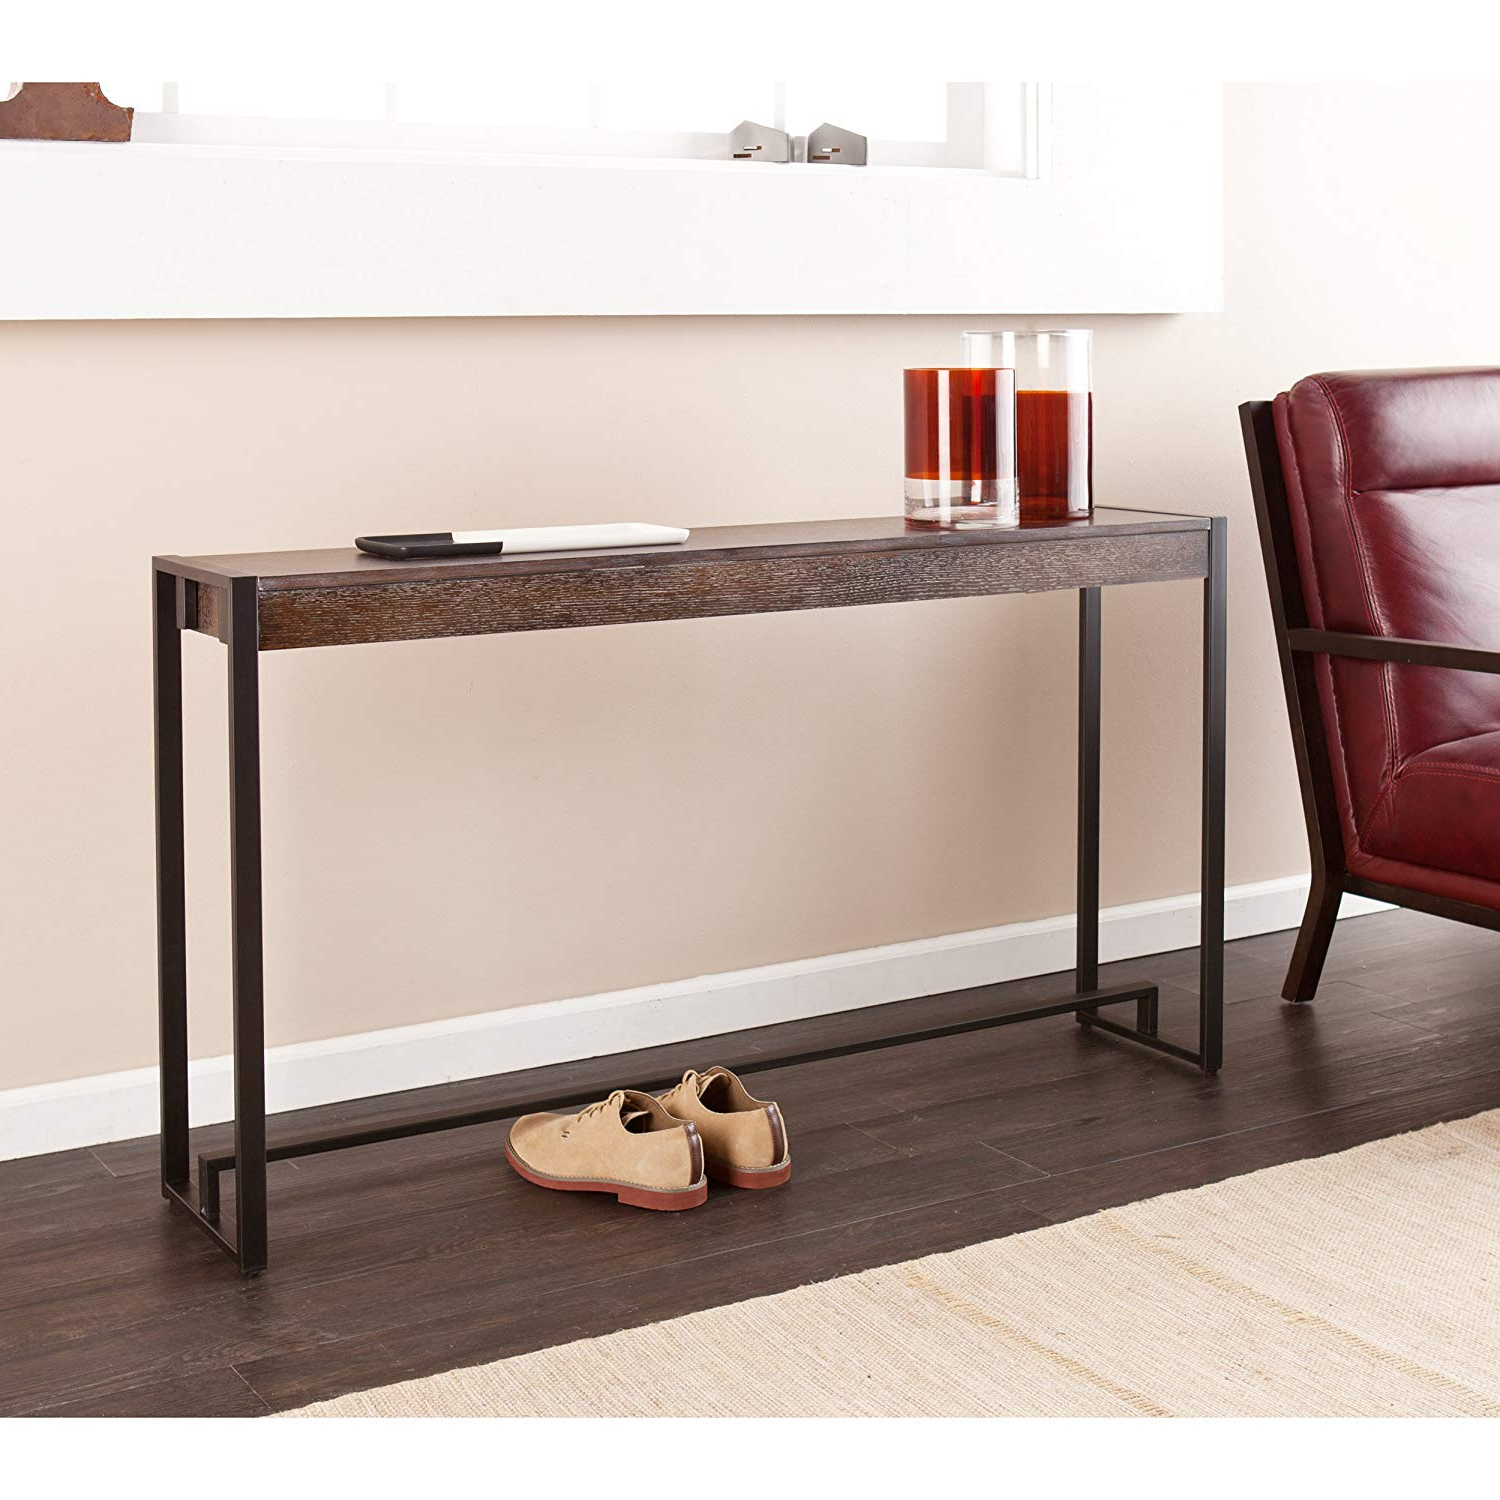 Burnt Oak Metal Sideboards Inside Current Amazon: Holly & Martin Macen Media Console Table, Burnt Oak With (View 6 of 20)